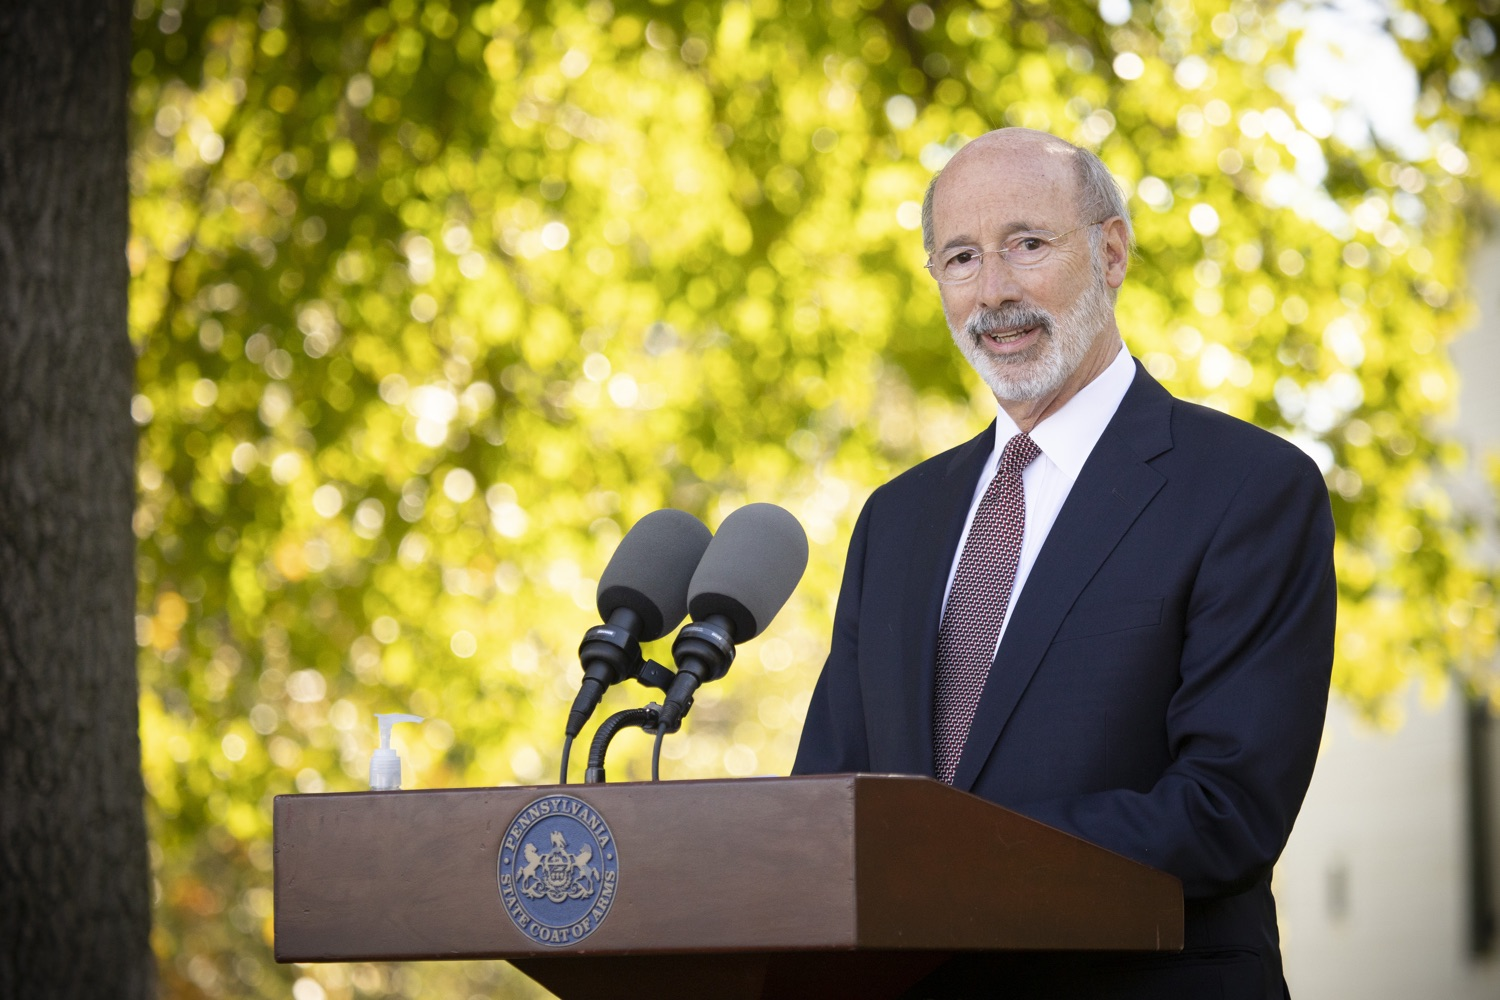 "<a href=""https://filesource.wostreaming.net/commonwealthofpa/photo/18321_gov_aca_dz_016.jpg"" target=""_blank"">⇣ Download Photo<br></a>Pennsylvania Governor Tom Wolf speaking to the press.  As the number of positive COVID-19 cases rise in Pennsylvania and as we enter flu season, protecting the Affordable Care Act (ACA) and ensuring that all Pennsylvanians have access to health coverage are more important than ever, Governor Tom Wolf said today in Chester County. The governor was joined by local elected officials and representatives from local health care organizations. Landenberg, PA  October 15, 2020"